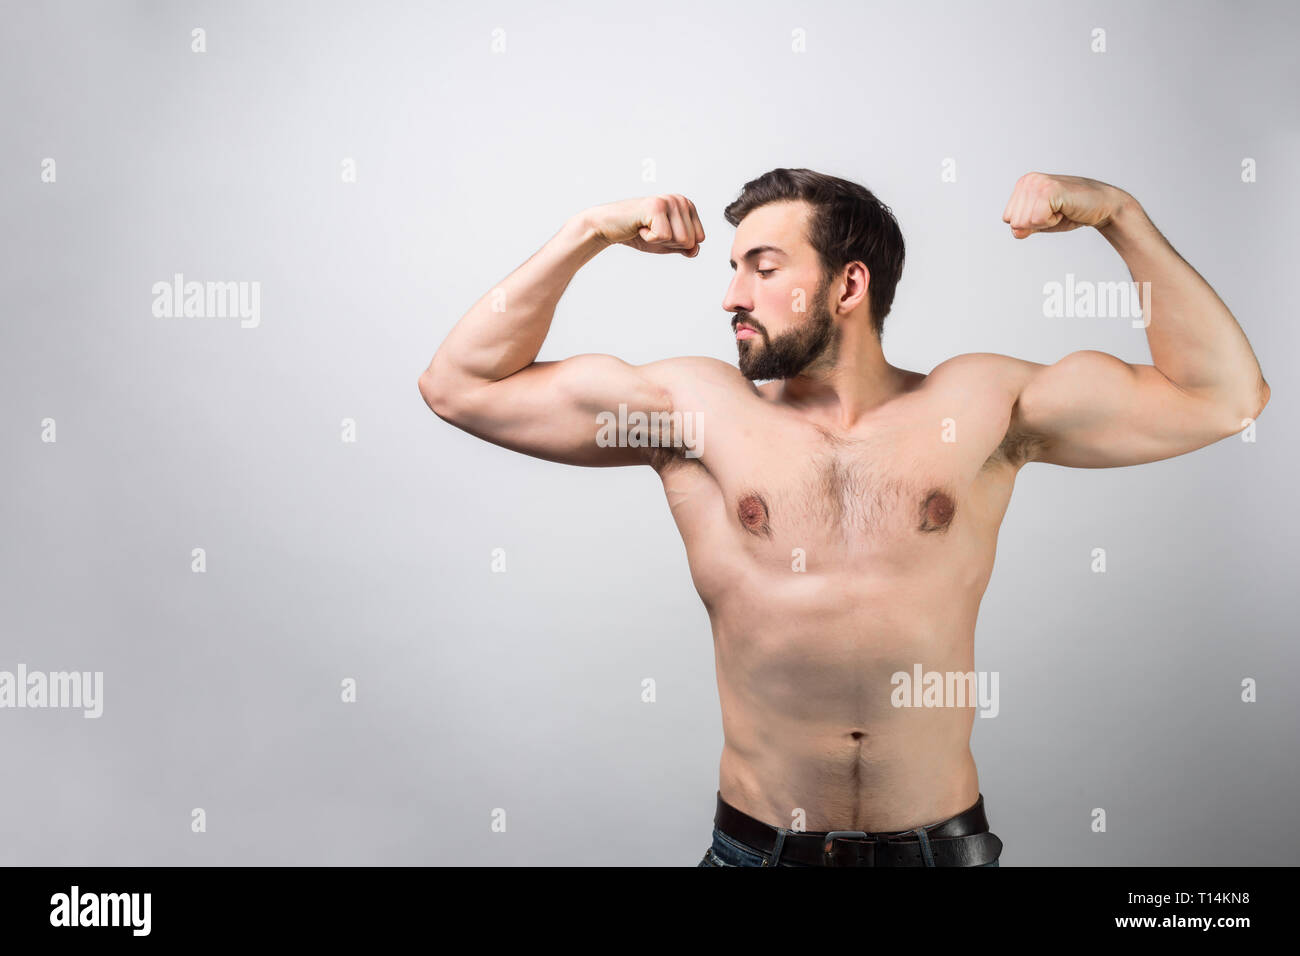 348614f0f Strong and powerful guy without a shirt is standing at white wall and  posing. He